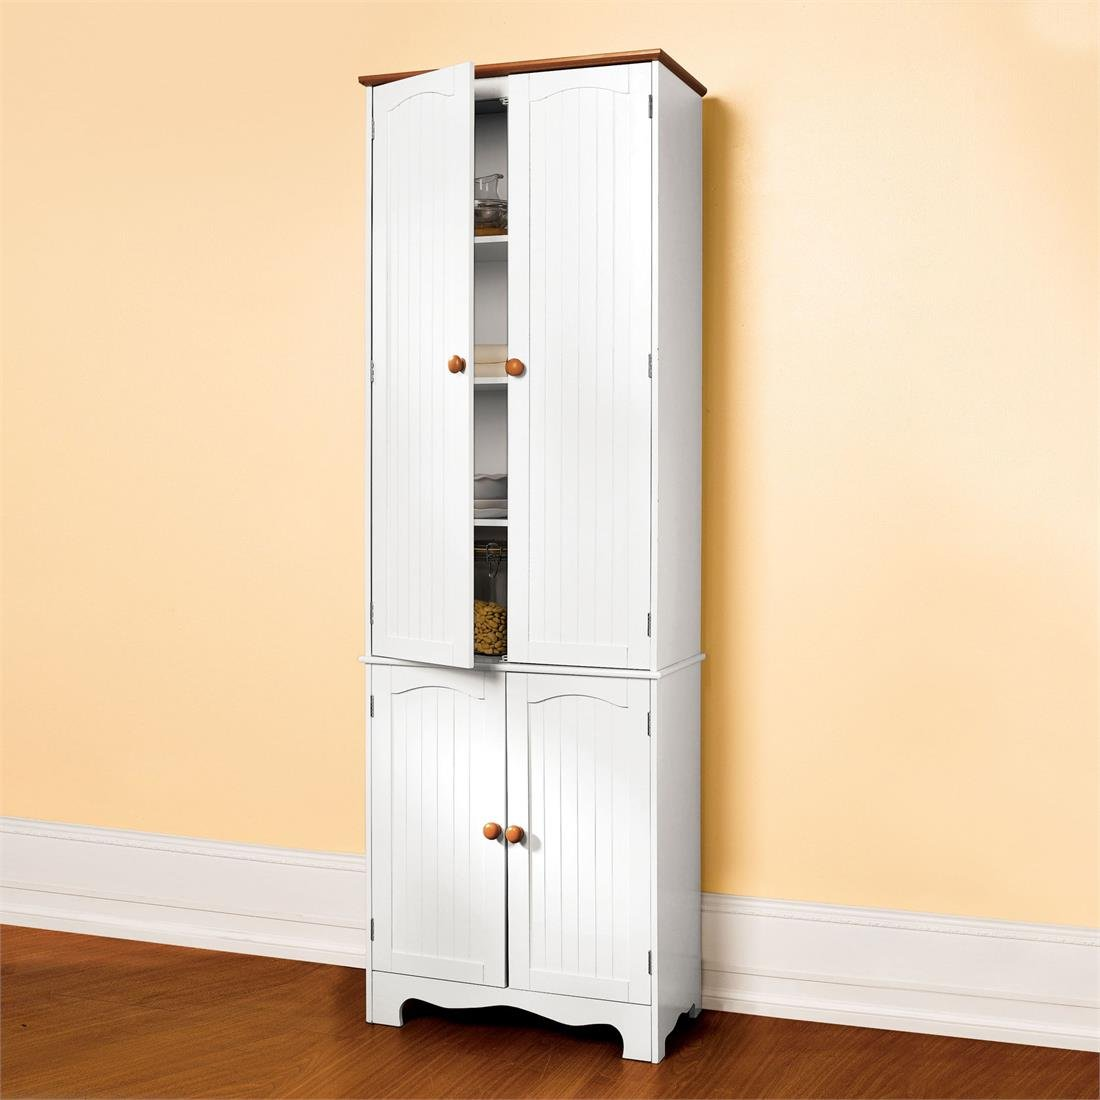 Pantry cabinet door pantry cabinet with tall narrow door for Amazon kitchen cabinets